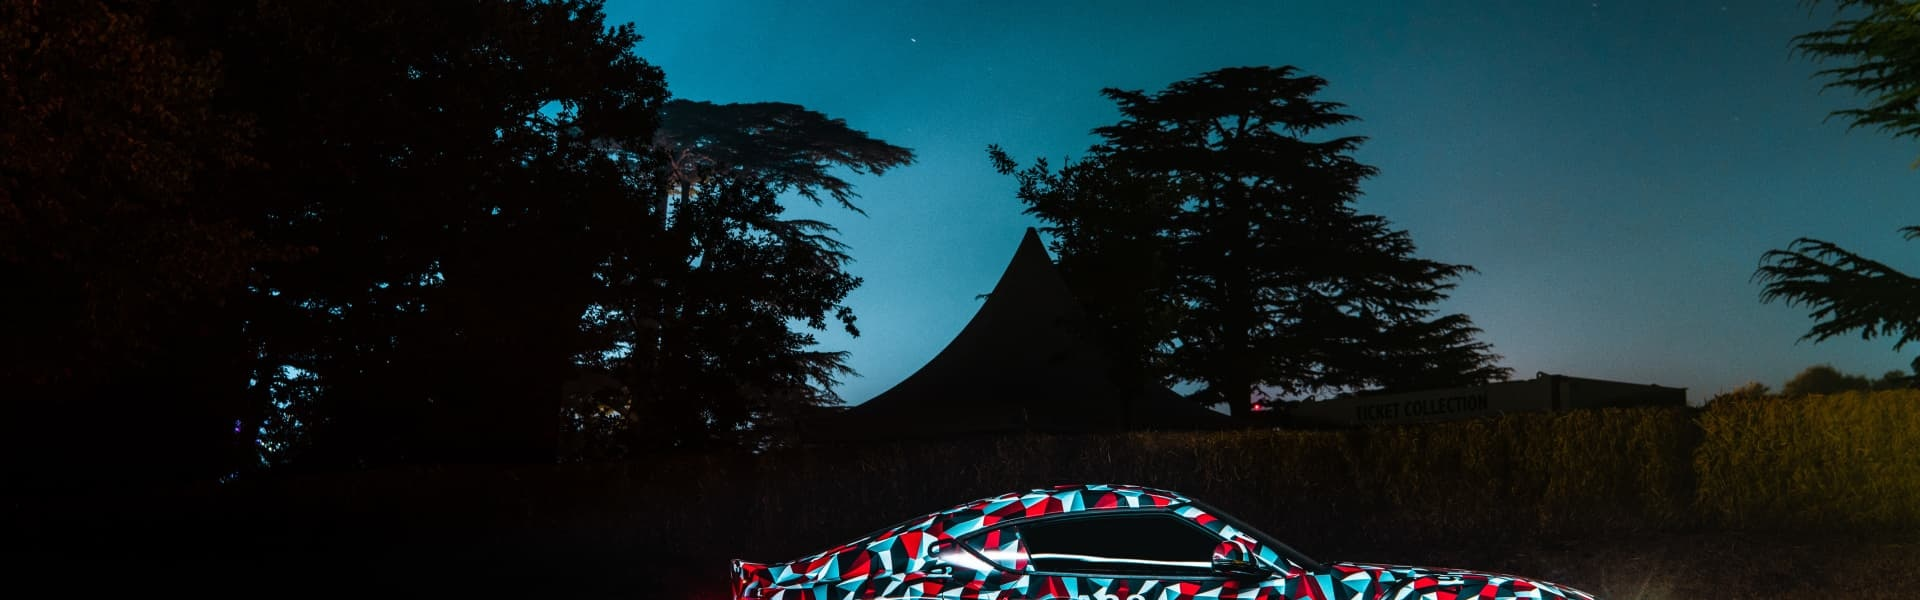 supra-goodwood-night-4.jpg